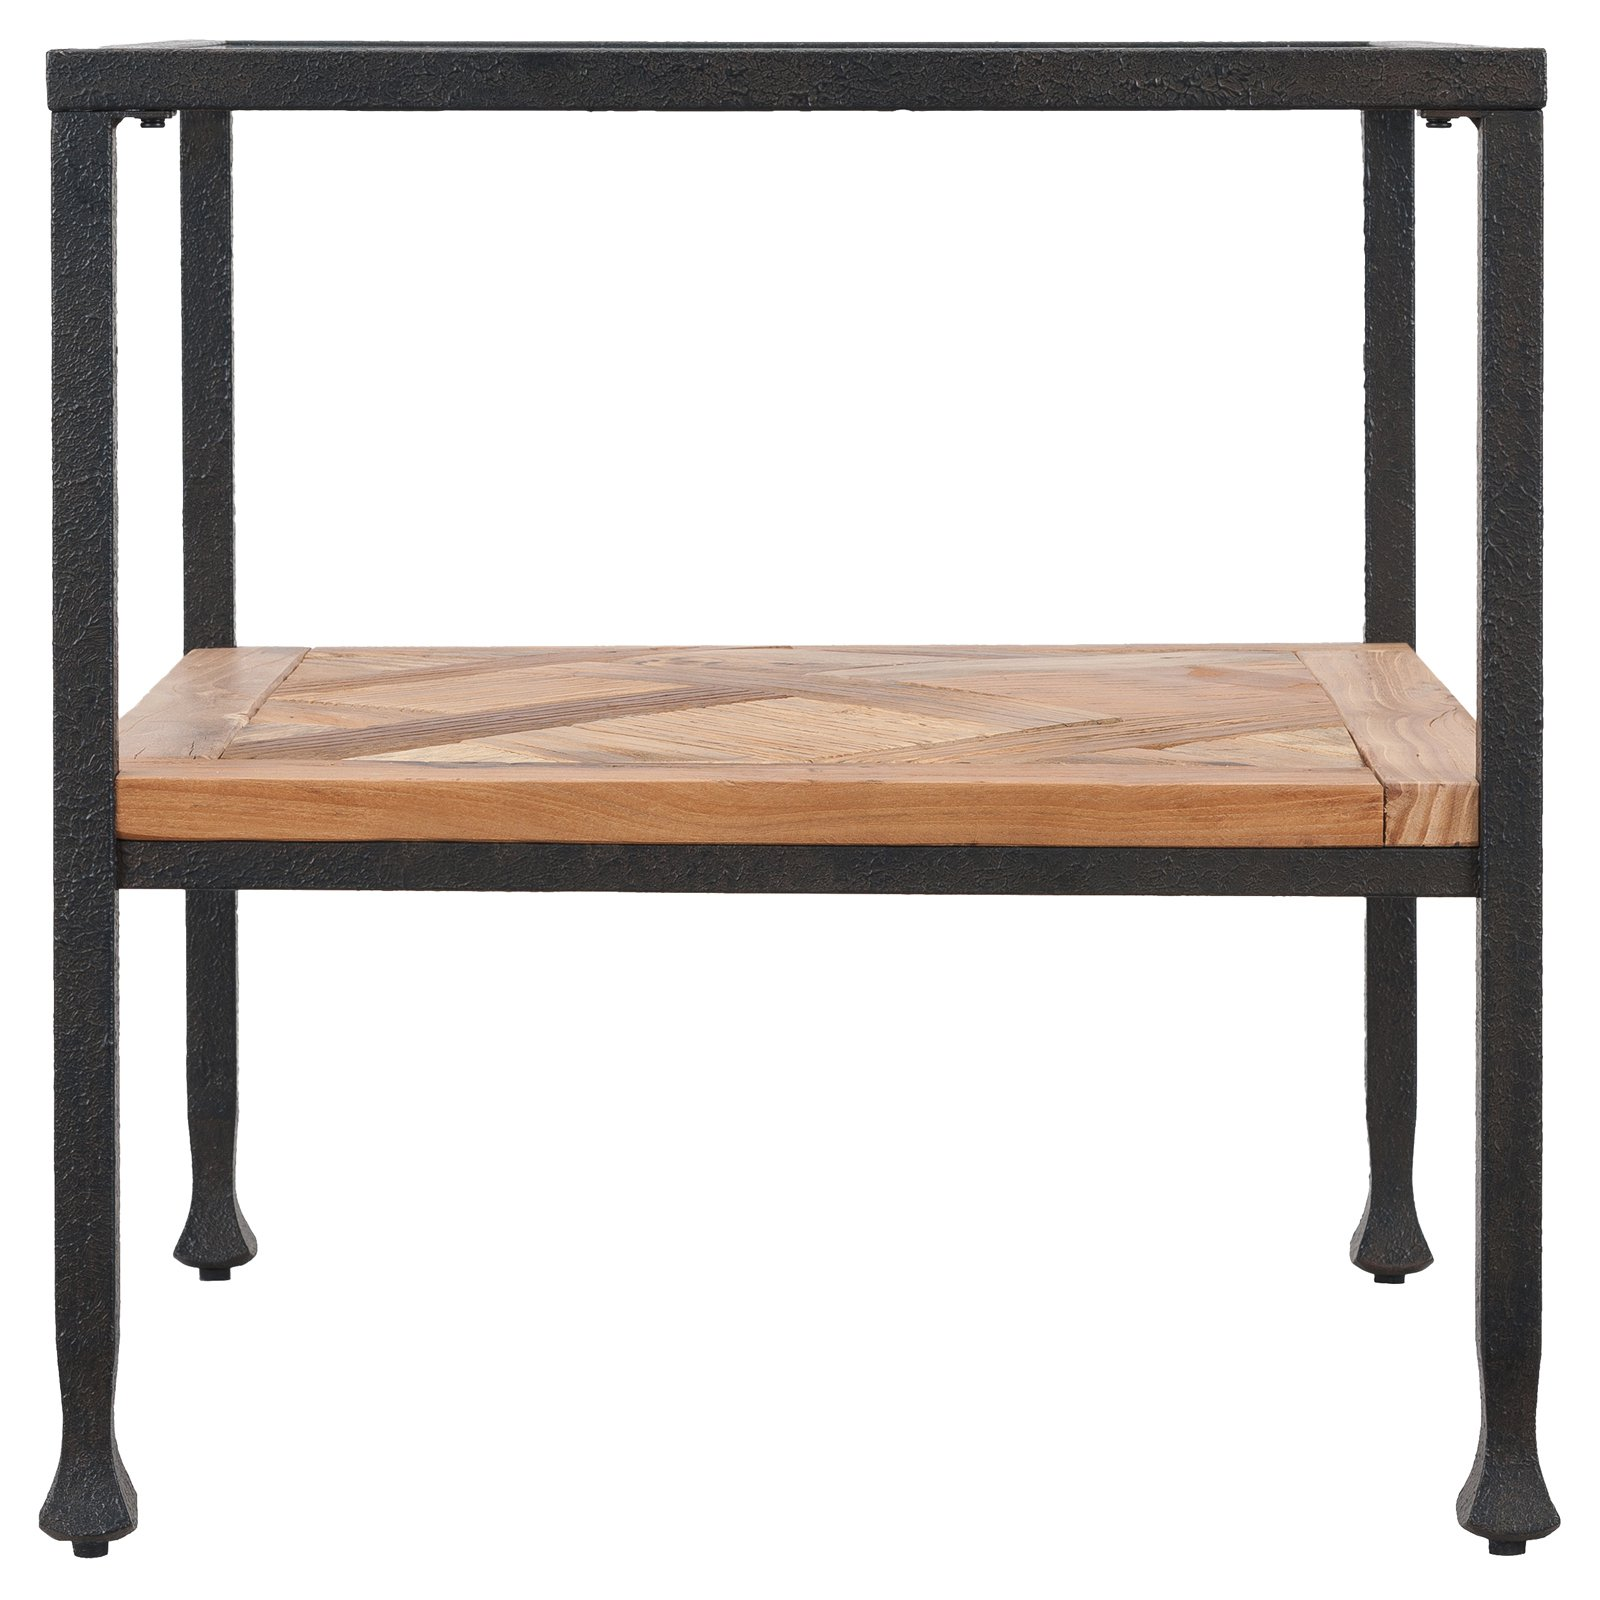 southern enterprises jogan reclaimed wood end table with glass top small round pedestal accent ana white farmhouse dining black metal pipe furniture unfinished parsons desk and